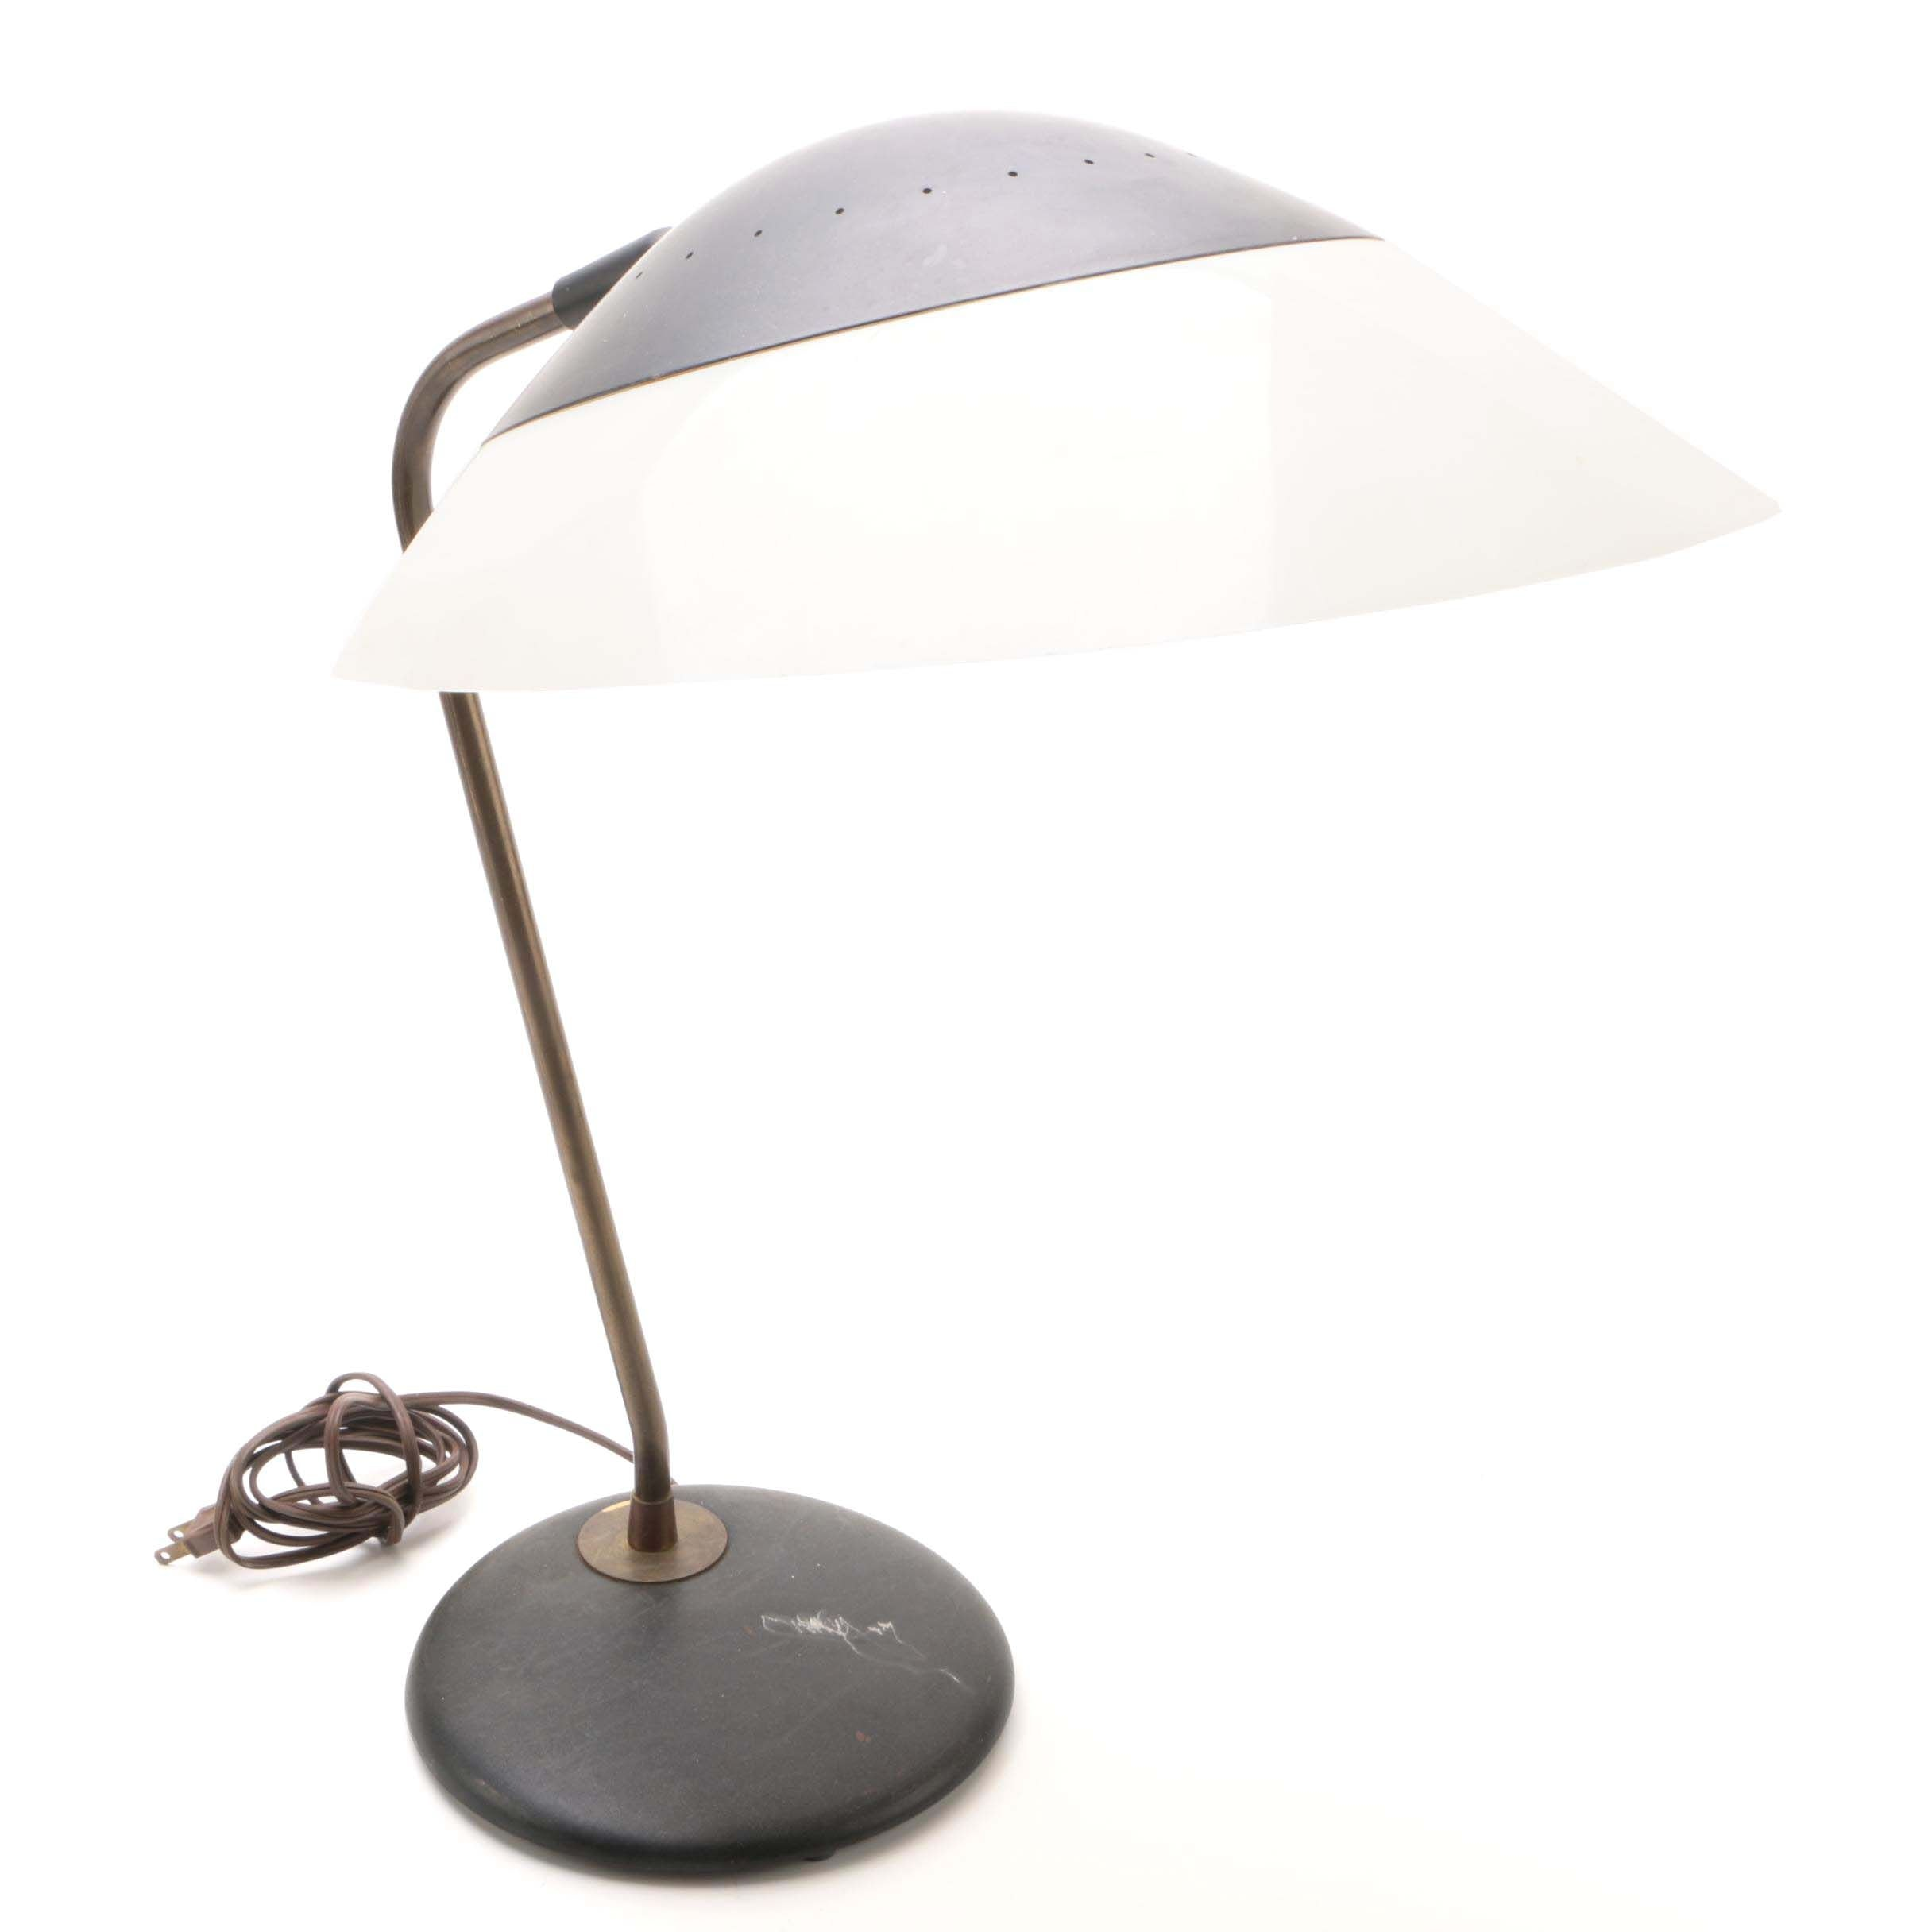 Mid Century Modern Desk Lamp with Saucer Shade